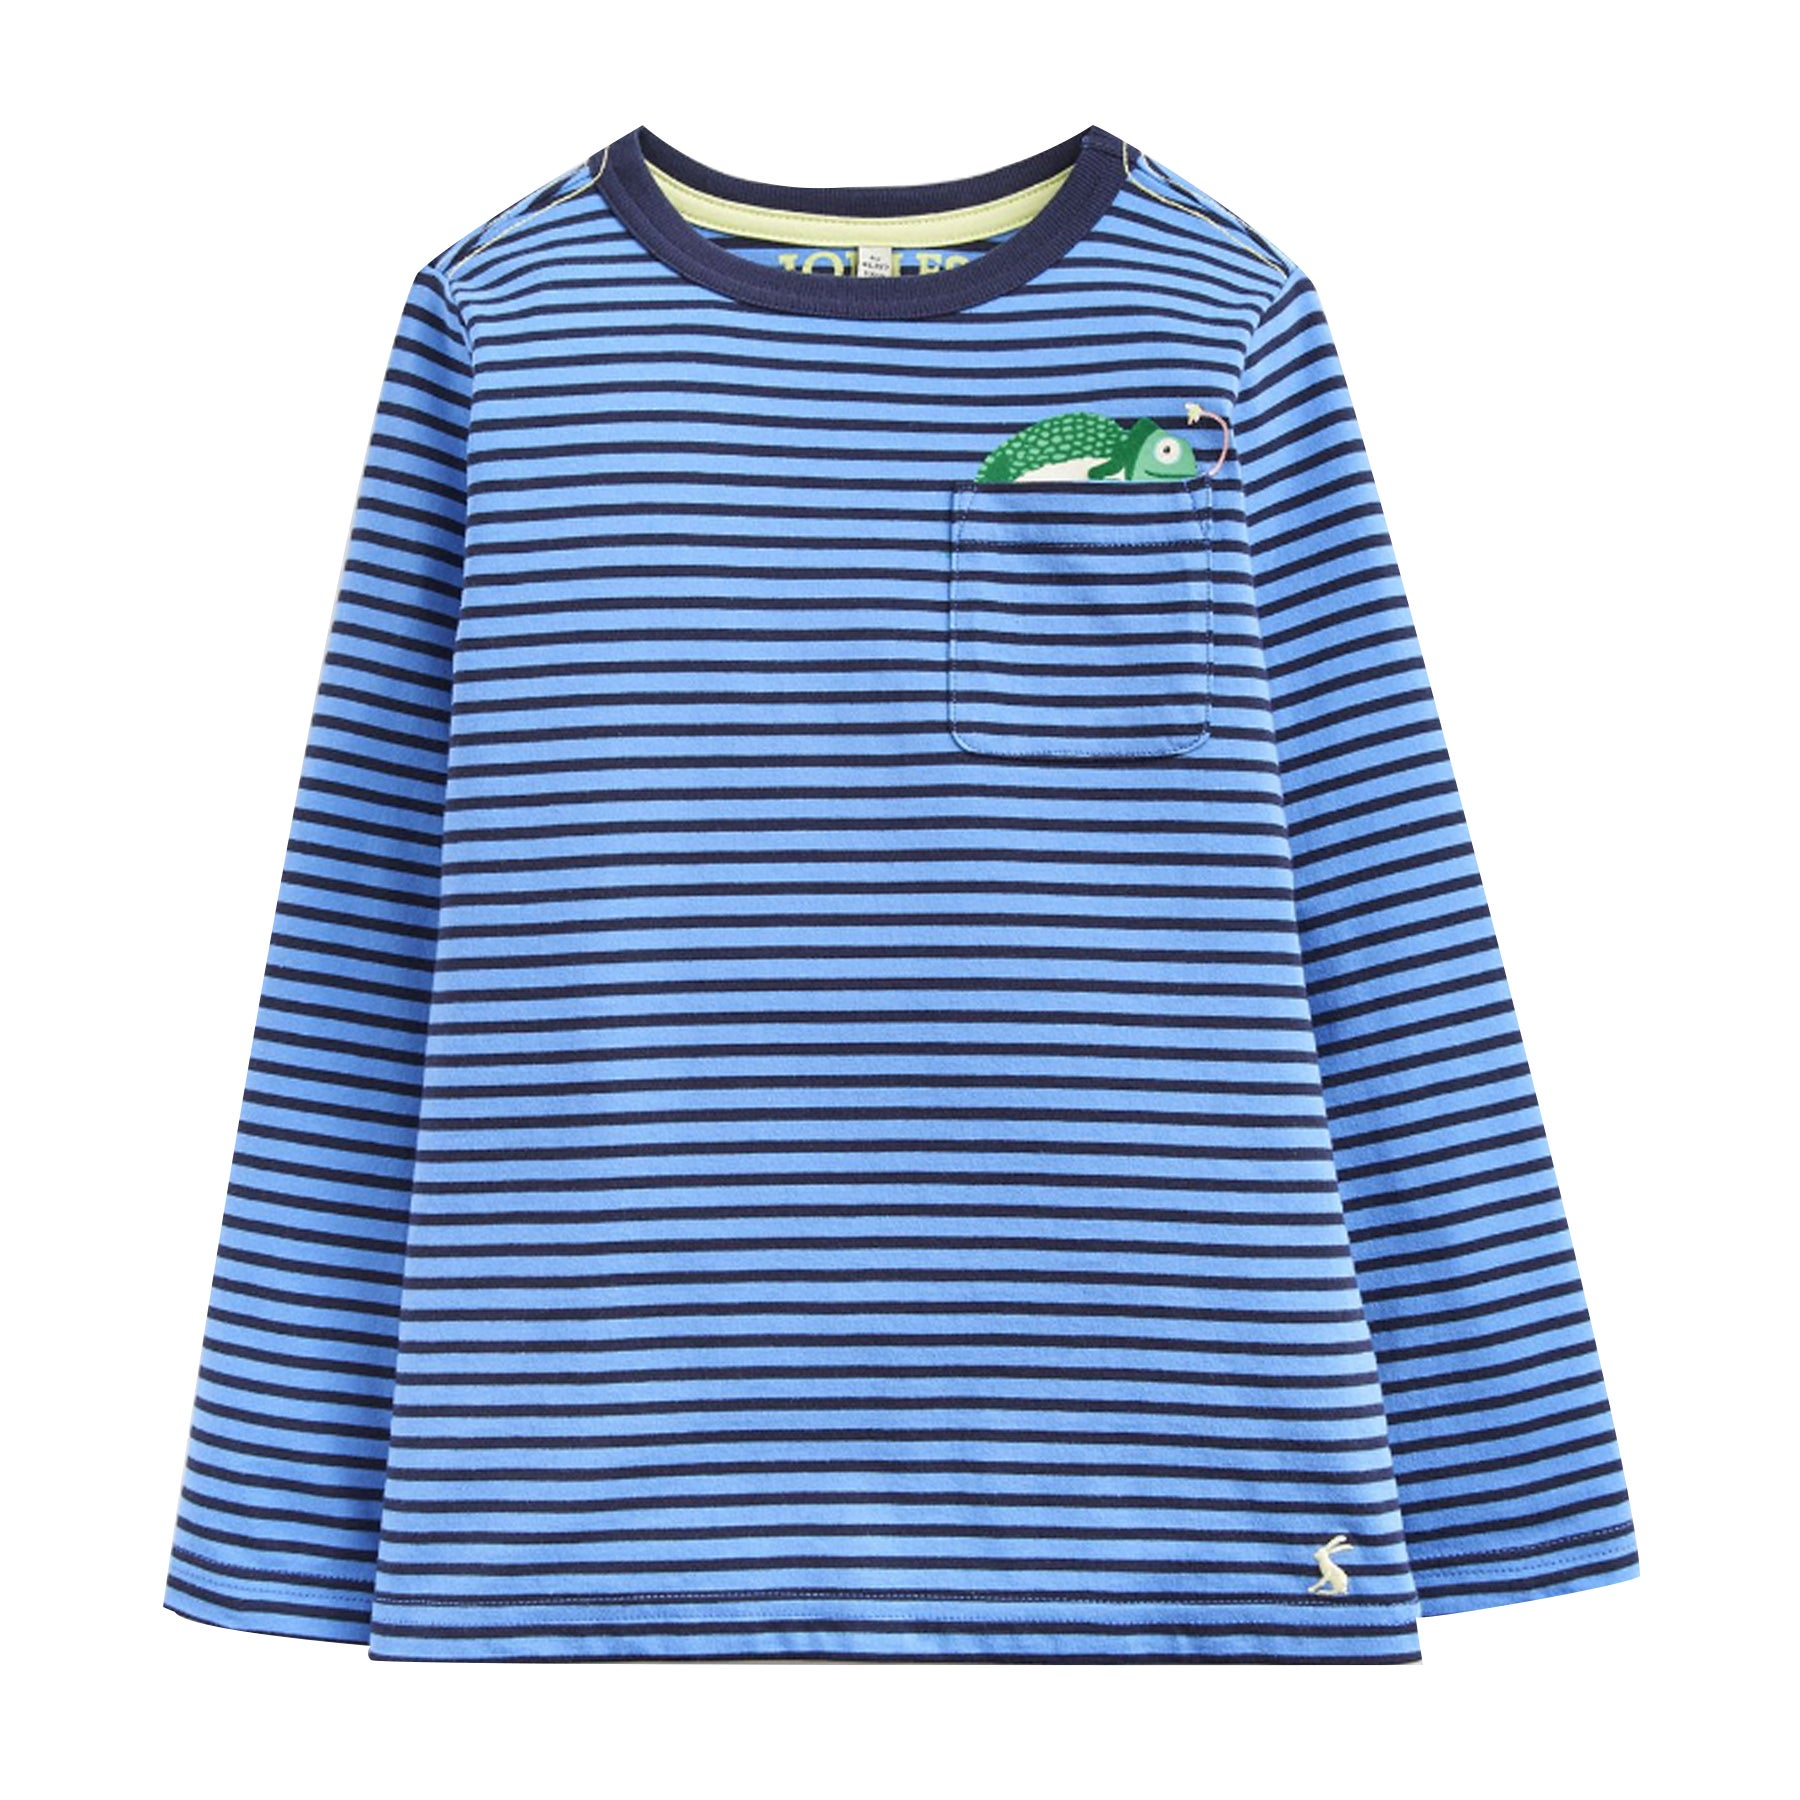 Joules Winston Boys Long Sleeve T-Shirt - Blue Stripe Chameleon Pocket